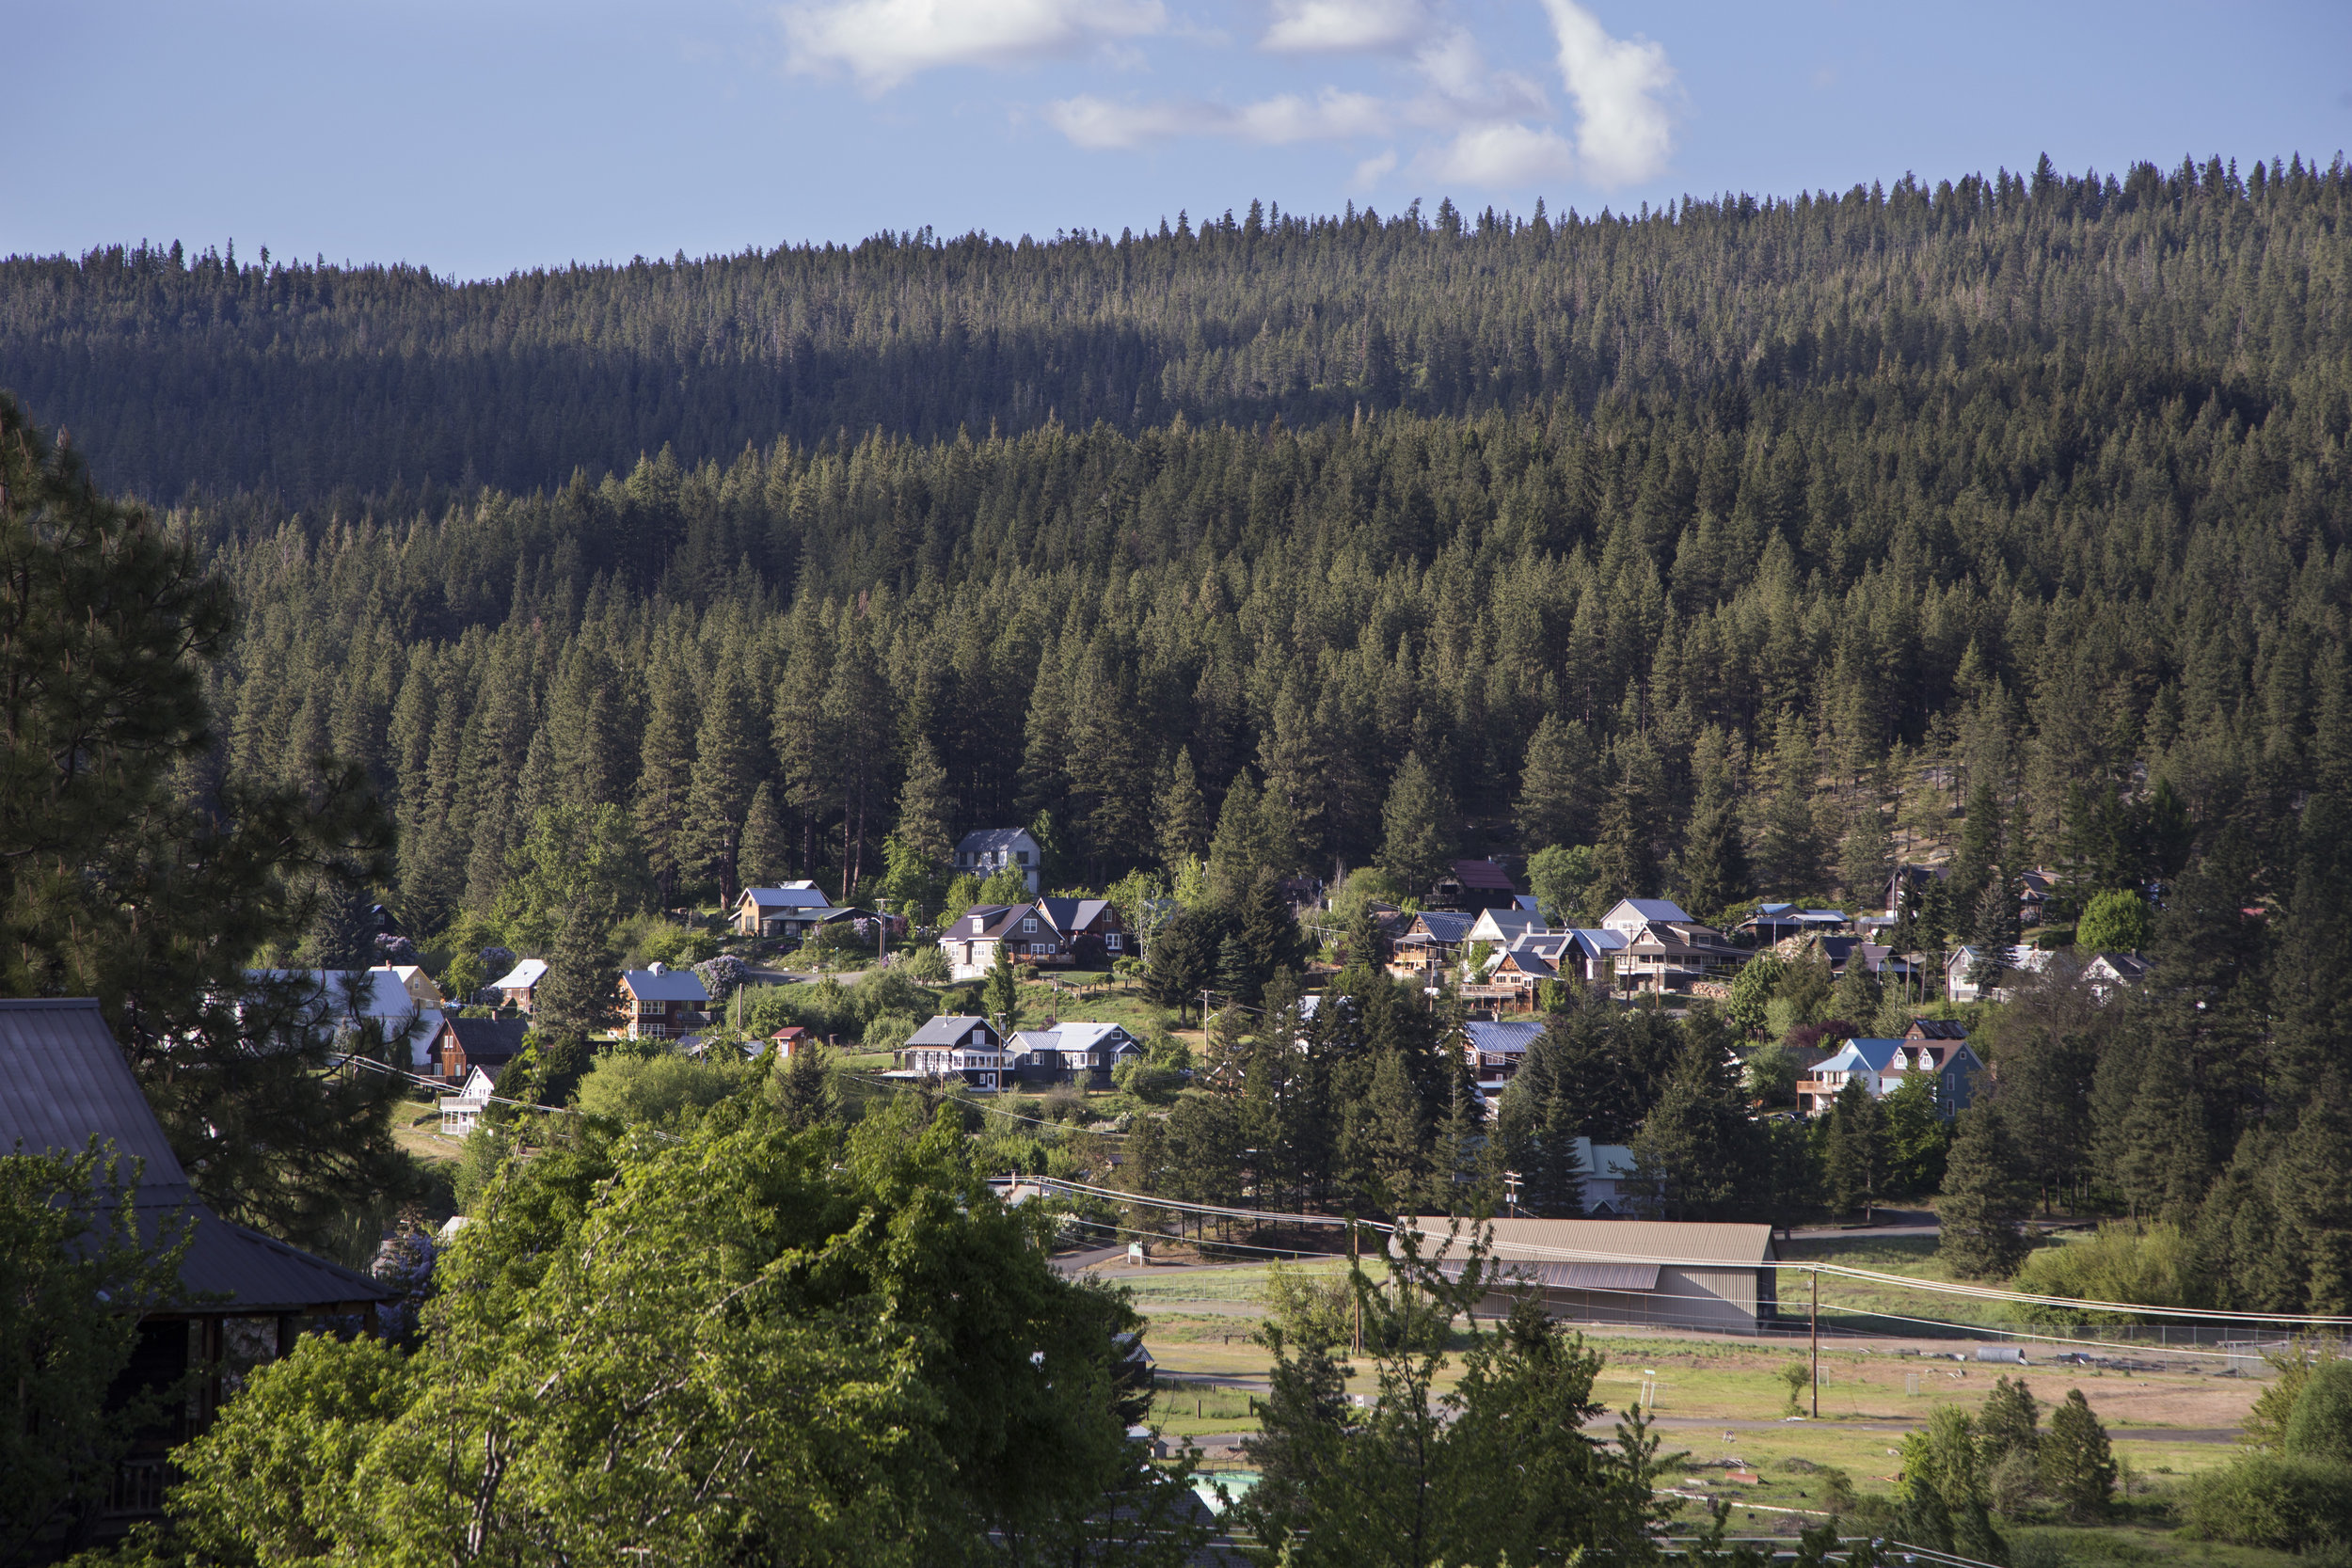 The Teanaway Community Forest is just one model of community forestry in Washington. Photo by John Marshall.